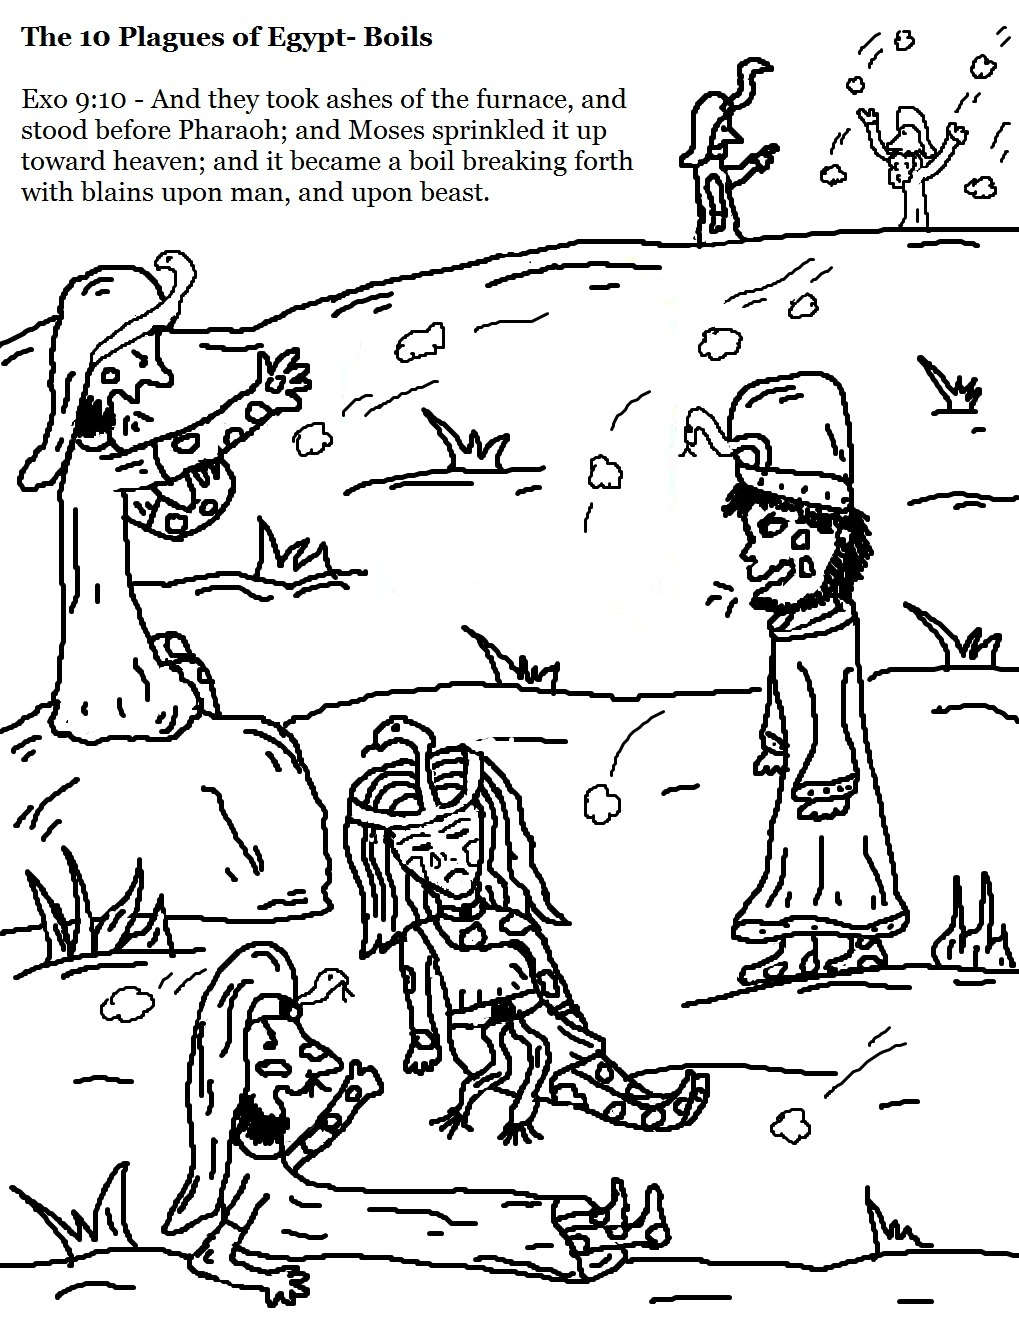 Coloring pages for 9 and up - The 10 Plagues Of Egypt Boils